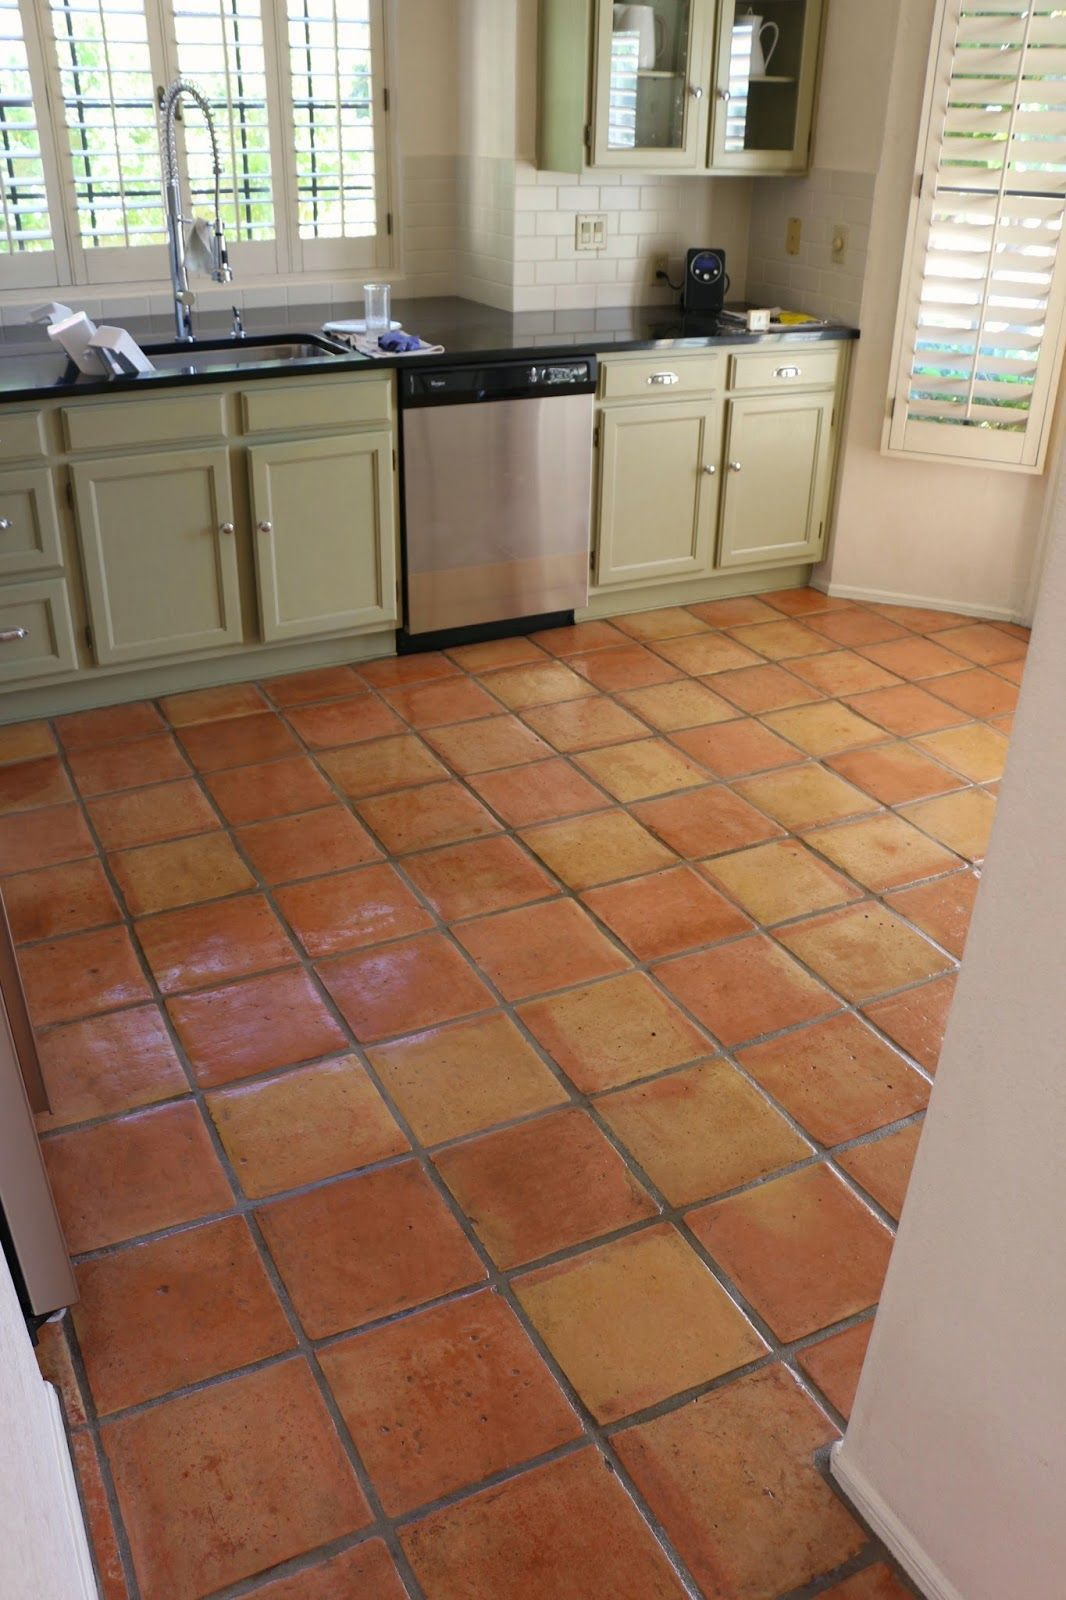 mexican tile floors in kitchen - Google Search | Coming Home ...